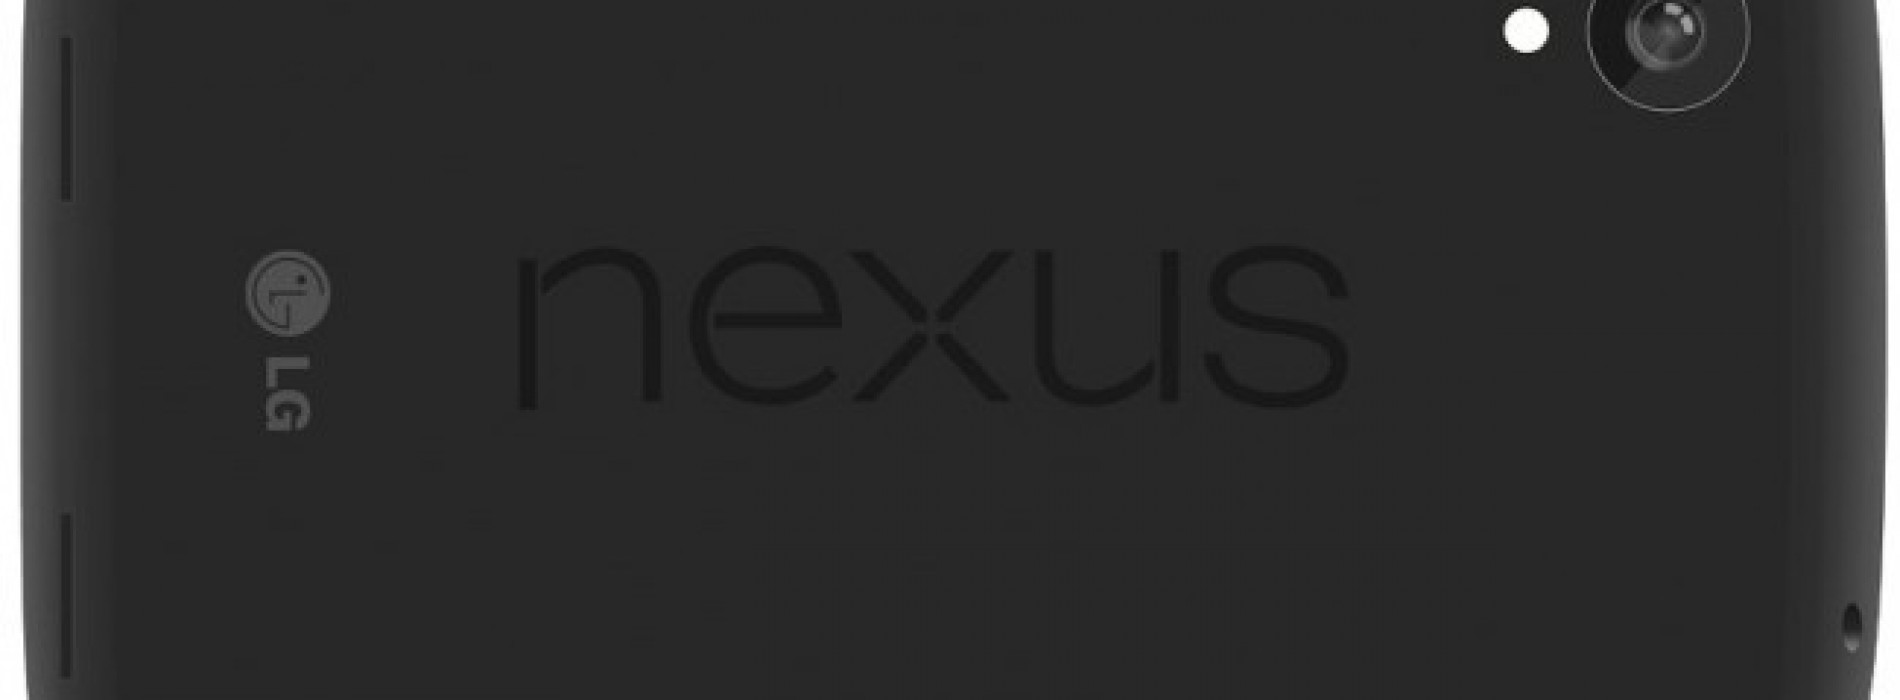 LG 'Hammerhead' Nexus 5 boasts Snapdragon 800, 1080p display